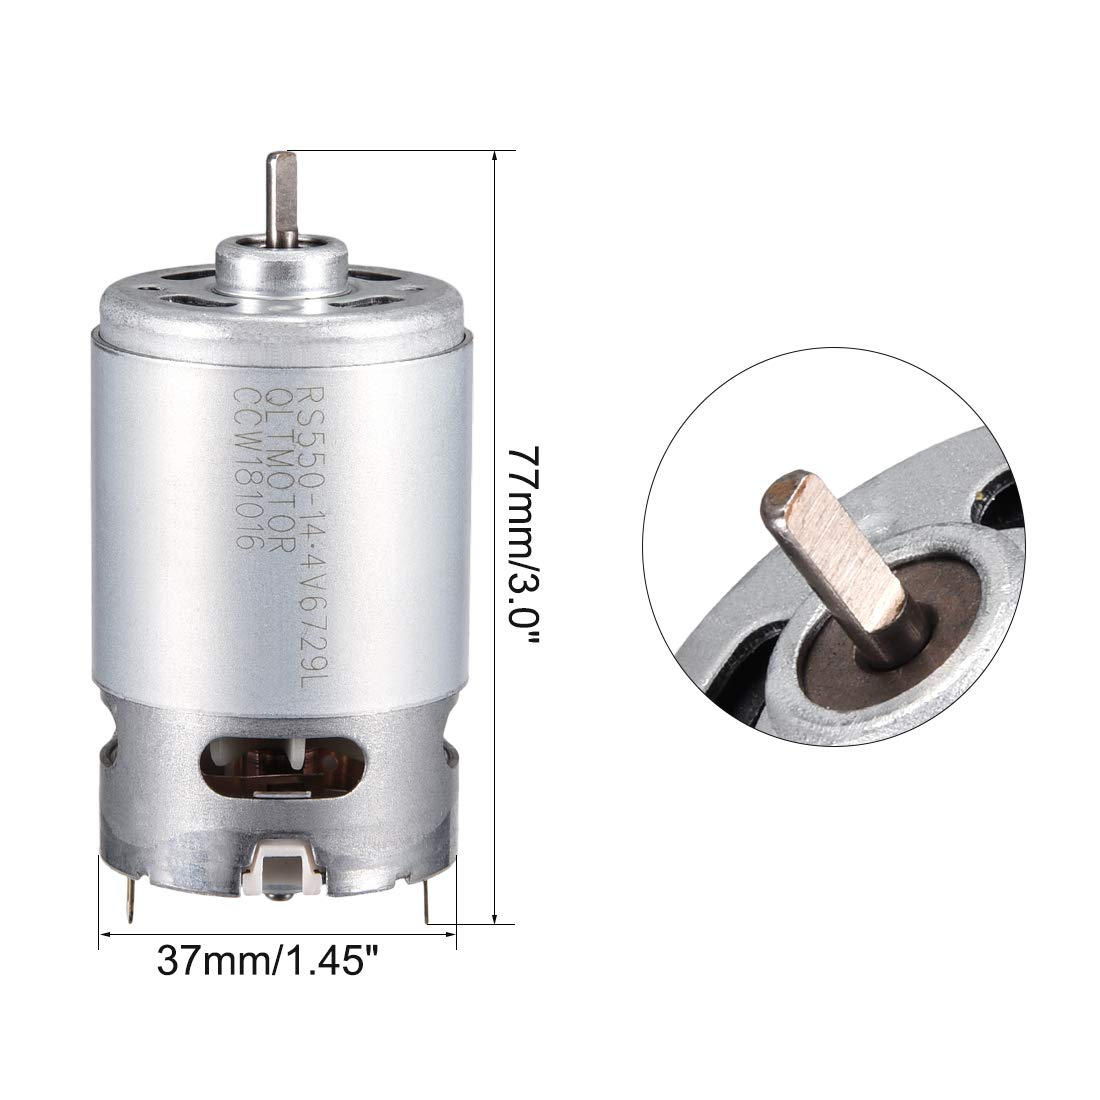 Robots uxcell 14.4V 19000RPM DC Motor for DIY Electronic Drills Replacement Engine Power Tool